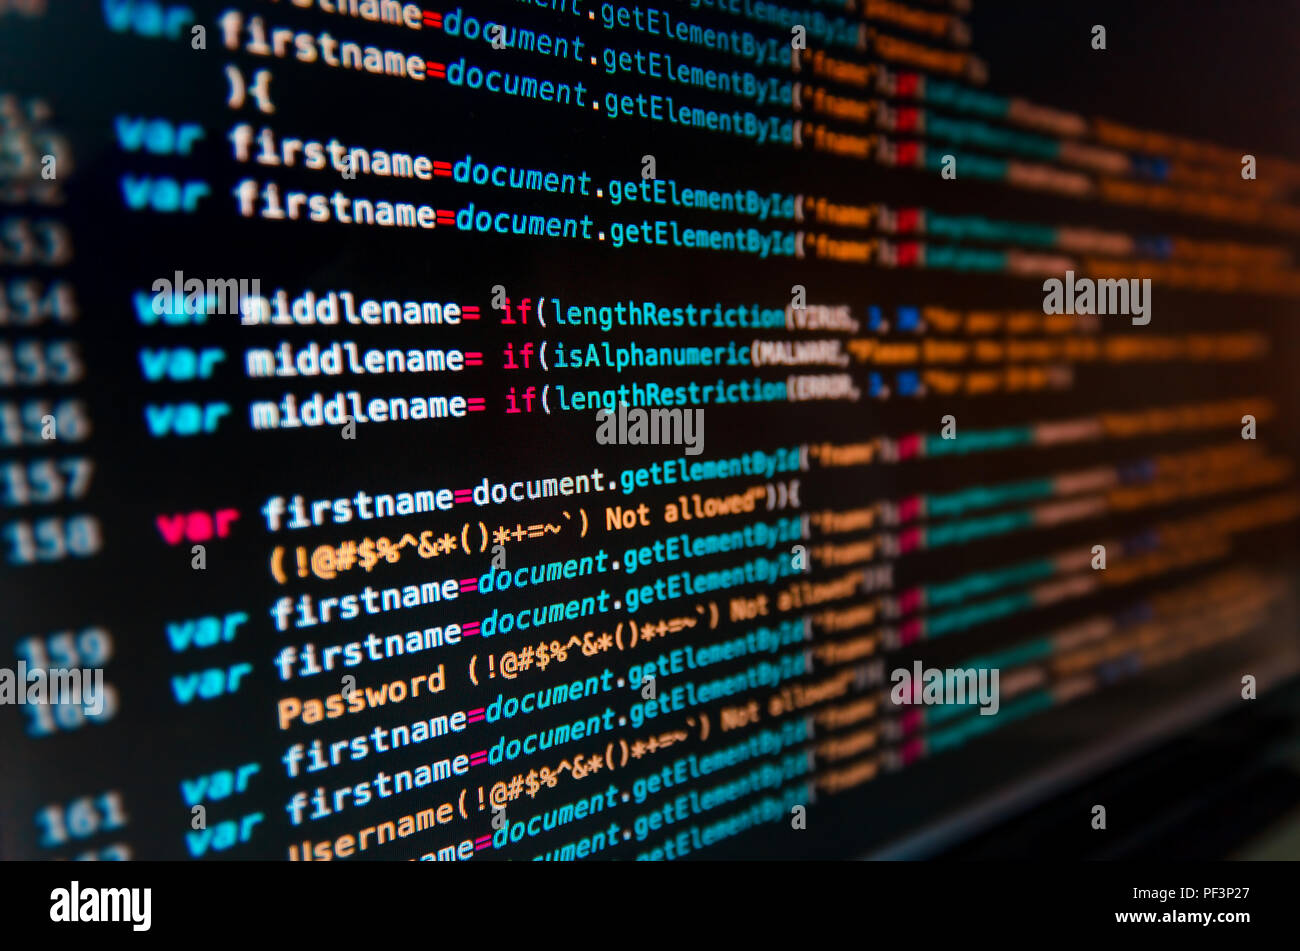 Desktop Source Code And Technology Background Developer Or Programer With Coding And Programming Wallpaper By Computer Language And Source Code Com Stock Photo Alamy